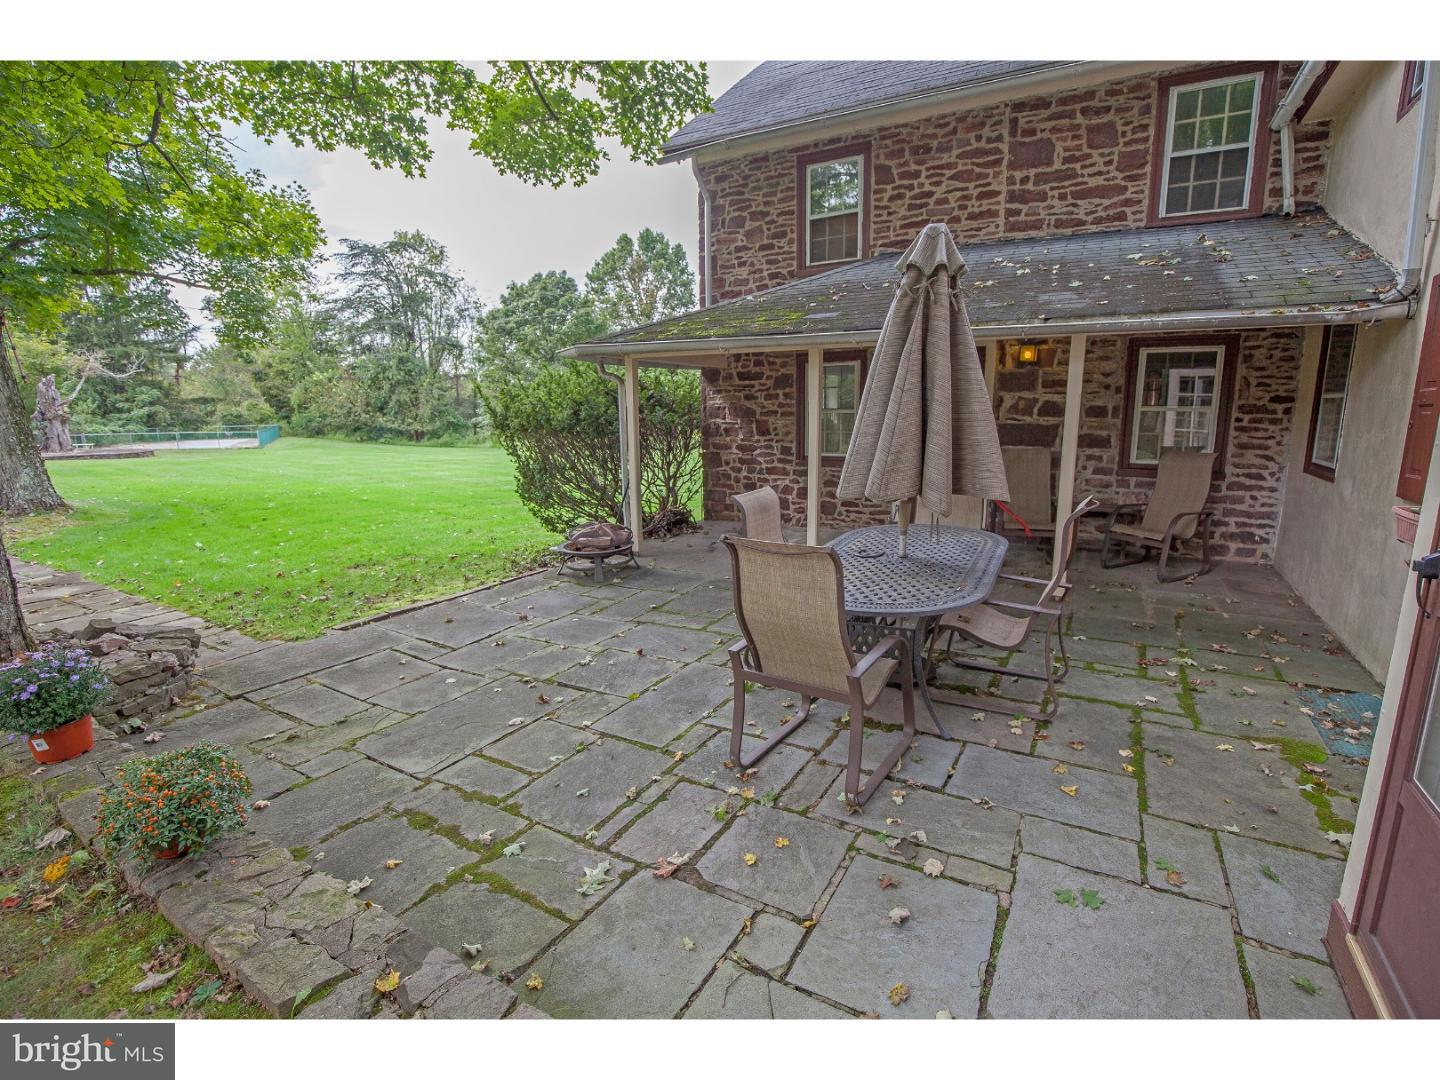 980 CEDAR LN, WYCOMBE - Listed at $598,000, WYCOMBE